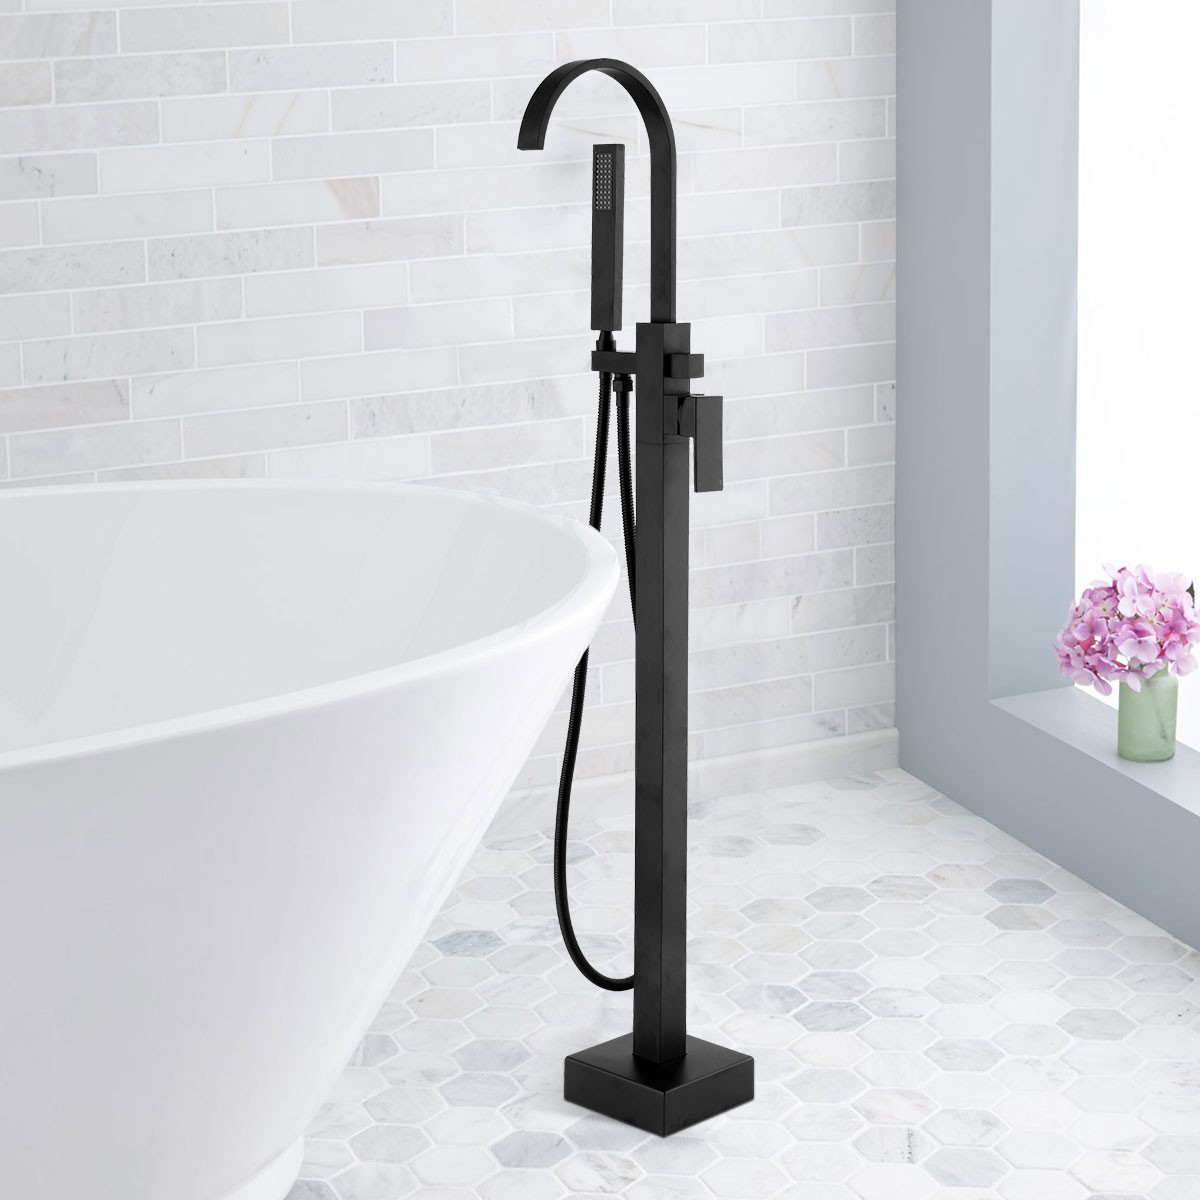 Freestanding Bathtub Faucet   Brass With Matte Black Finish (YDL 9111B)